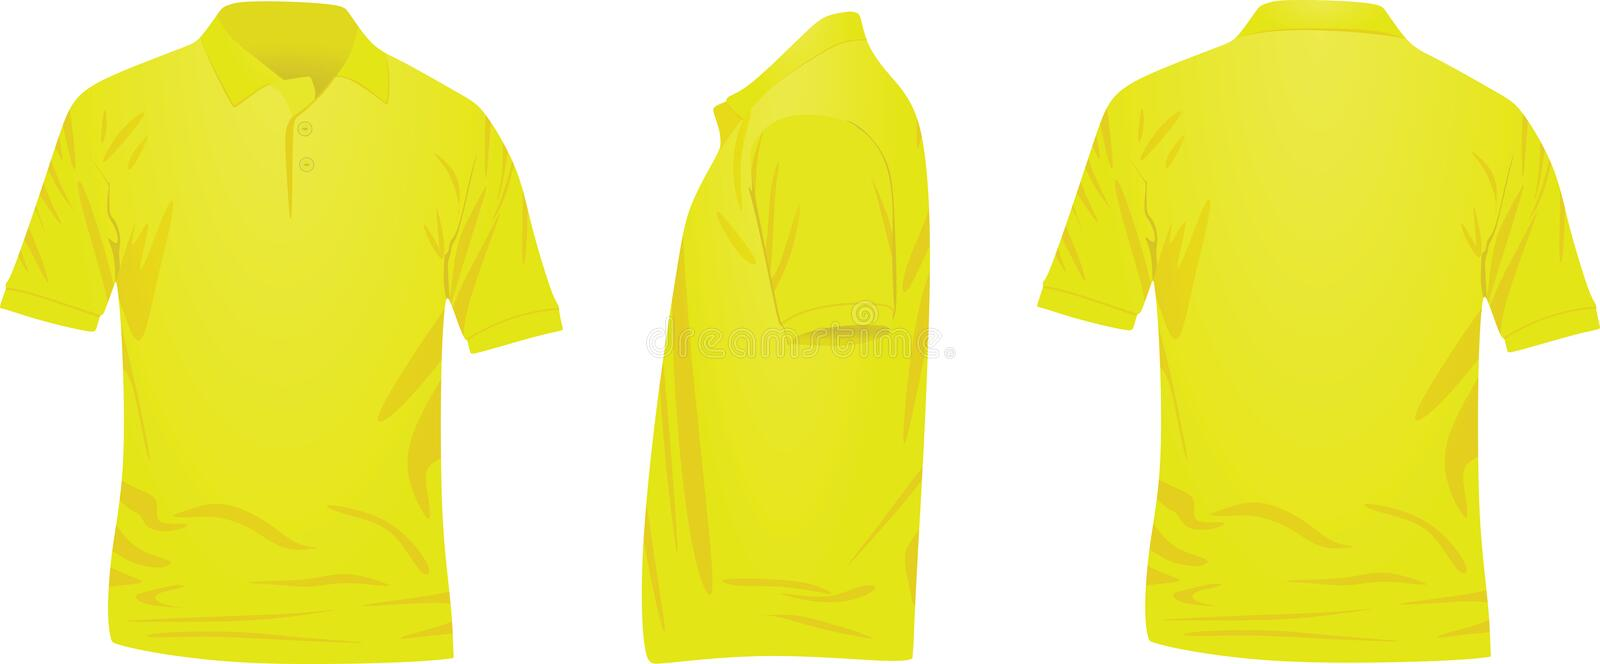 Yellow polo t shirt. front, back and side view stock illustration